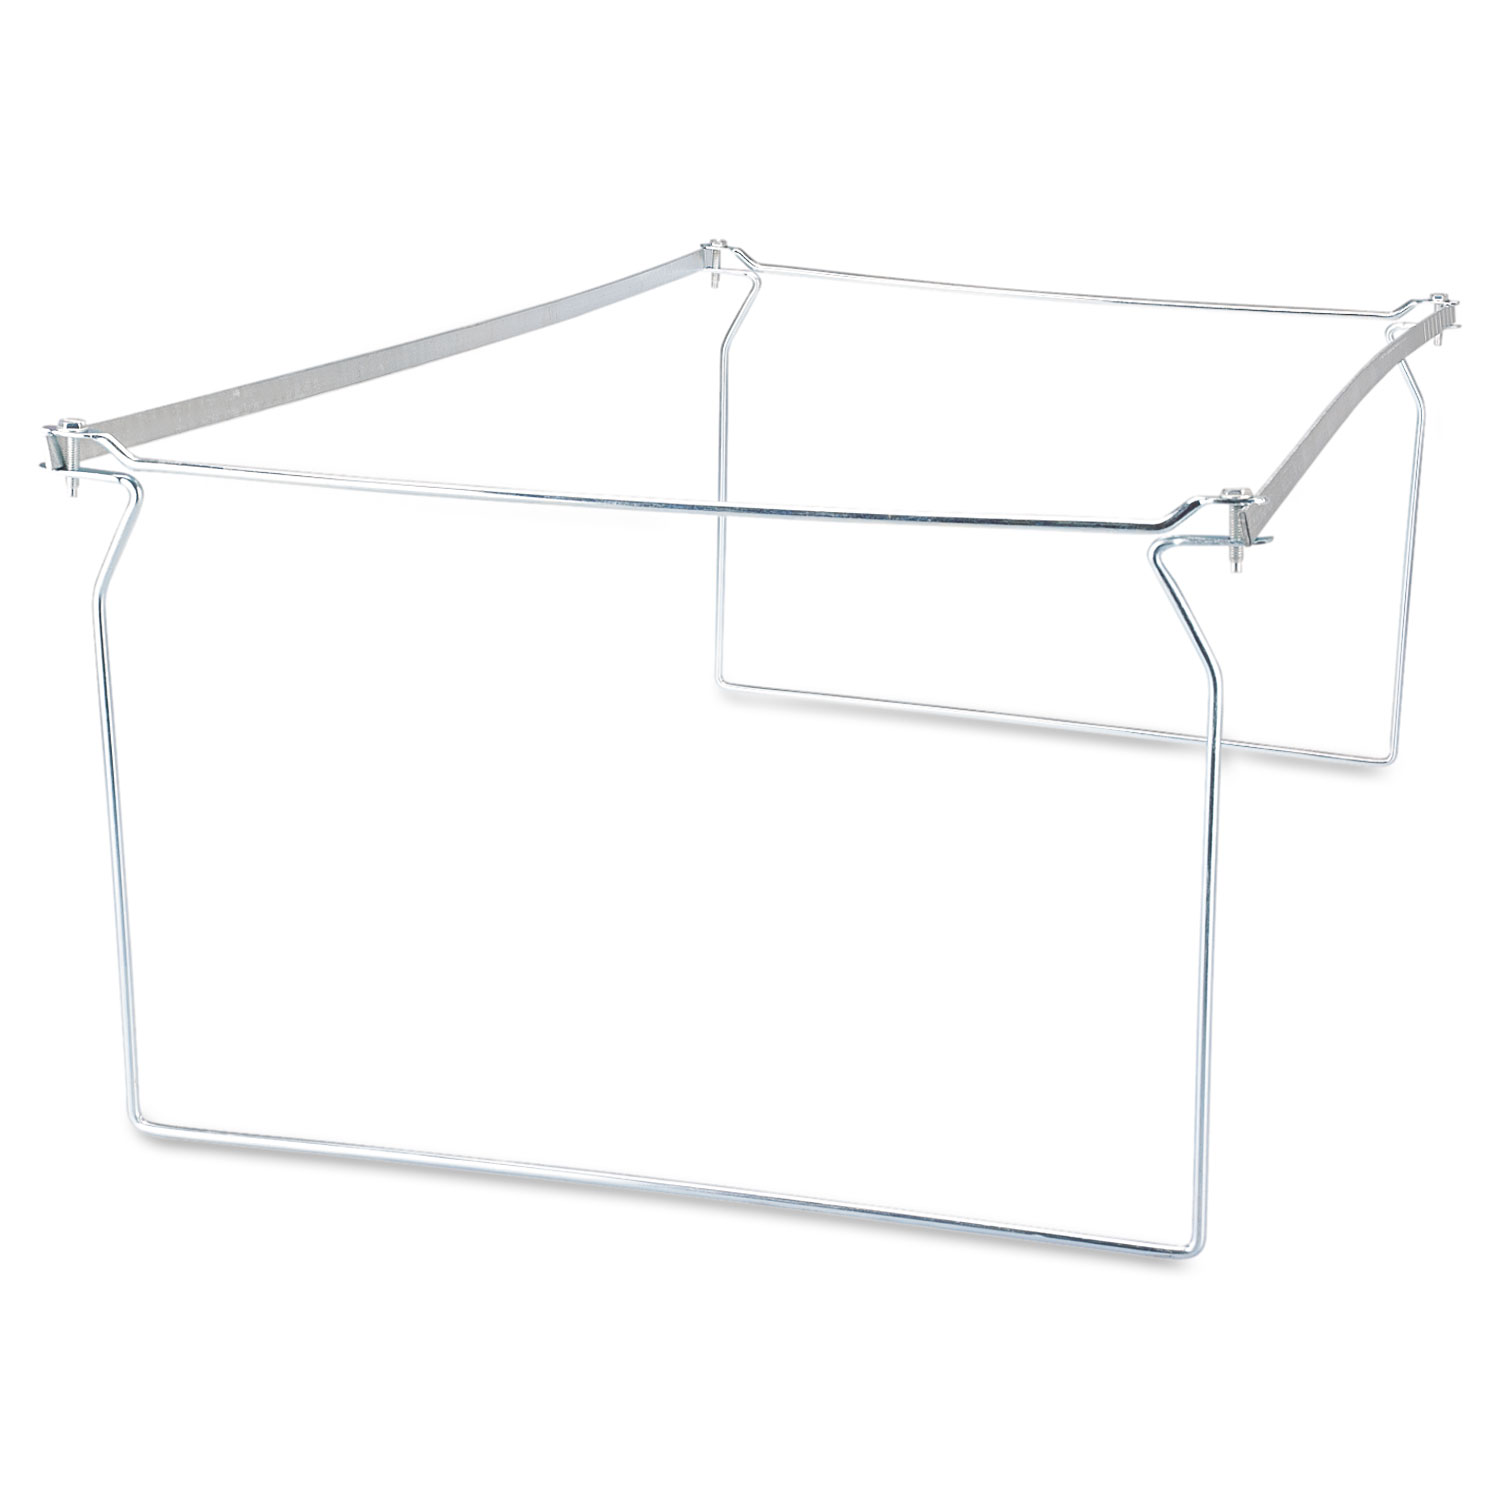 Screw Together Hanging Folder Frame Legal Size 23 26 77